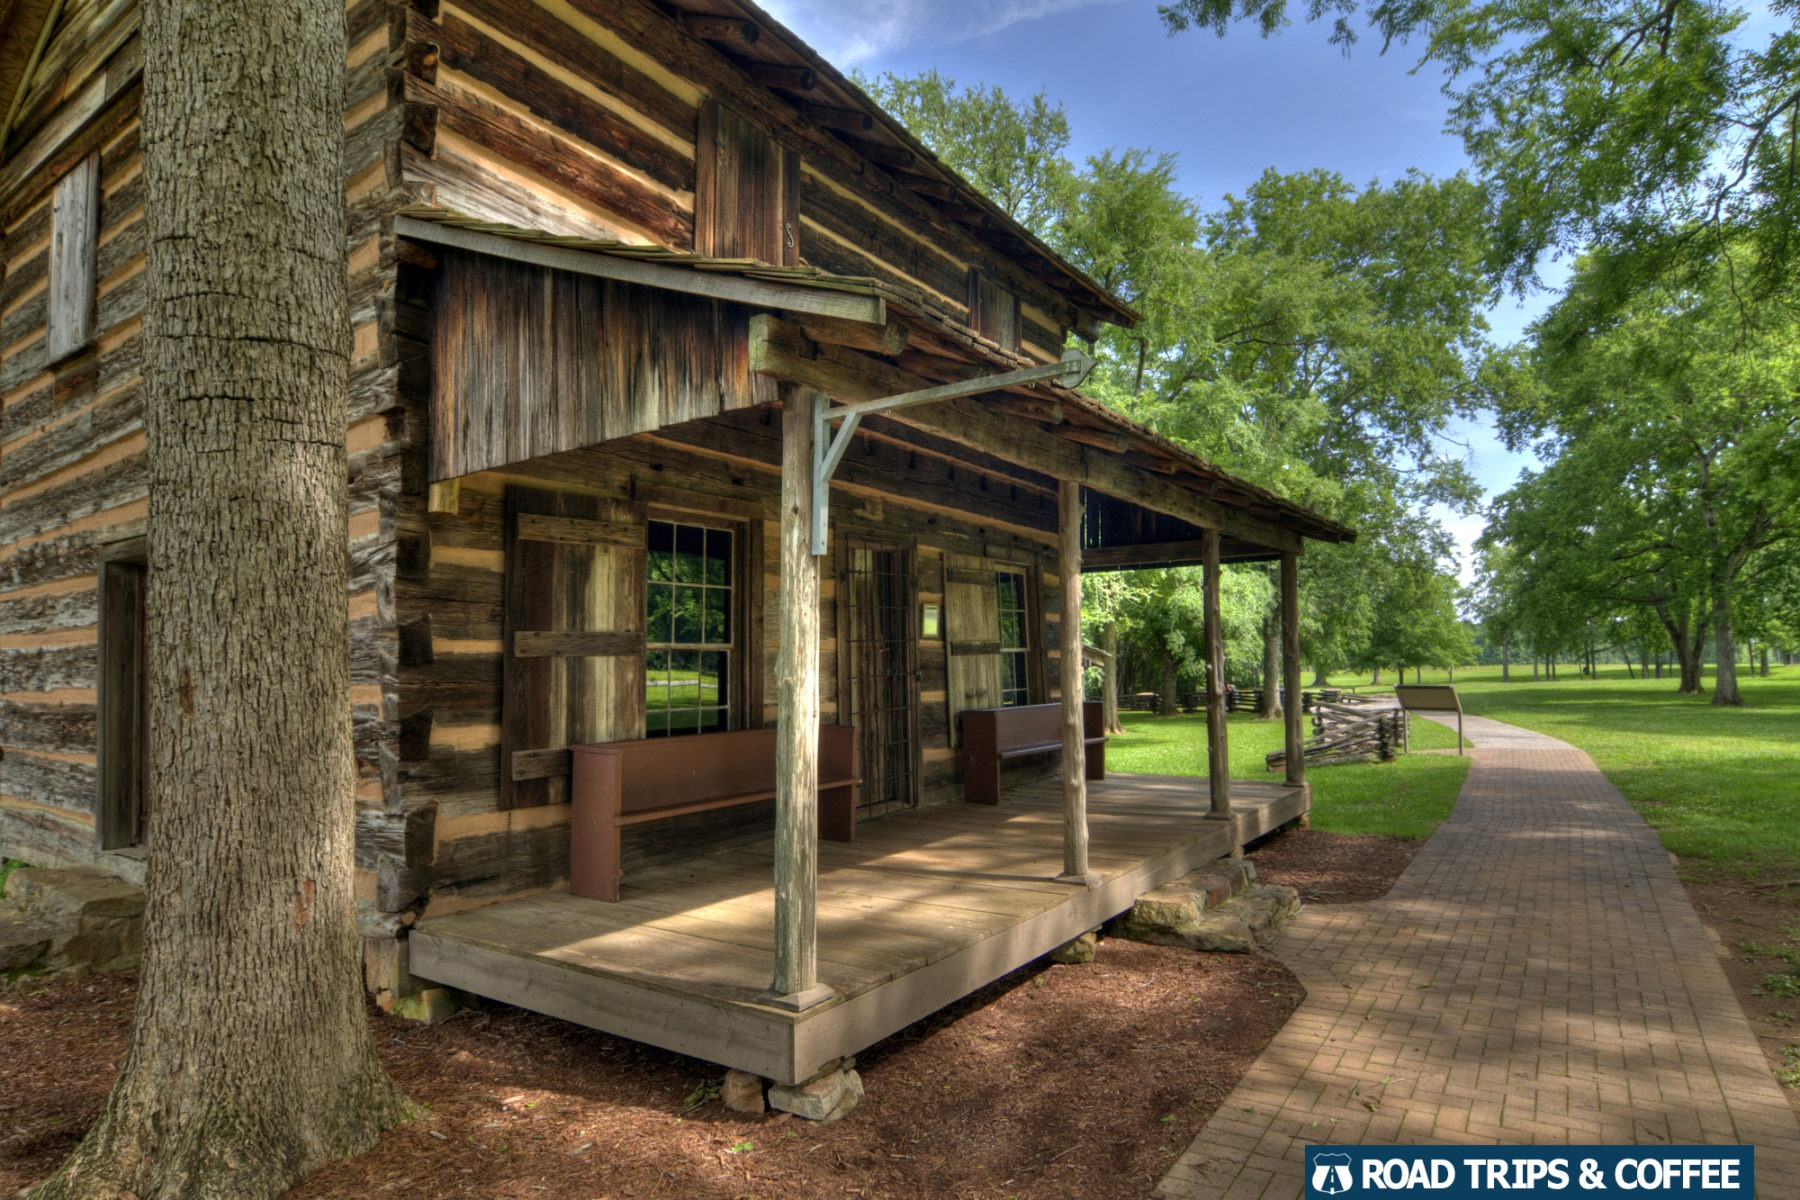 An old log home along the hiking trail at Ninety Six National Historic Site in Ninety Six, South Carolina